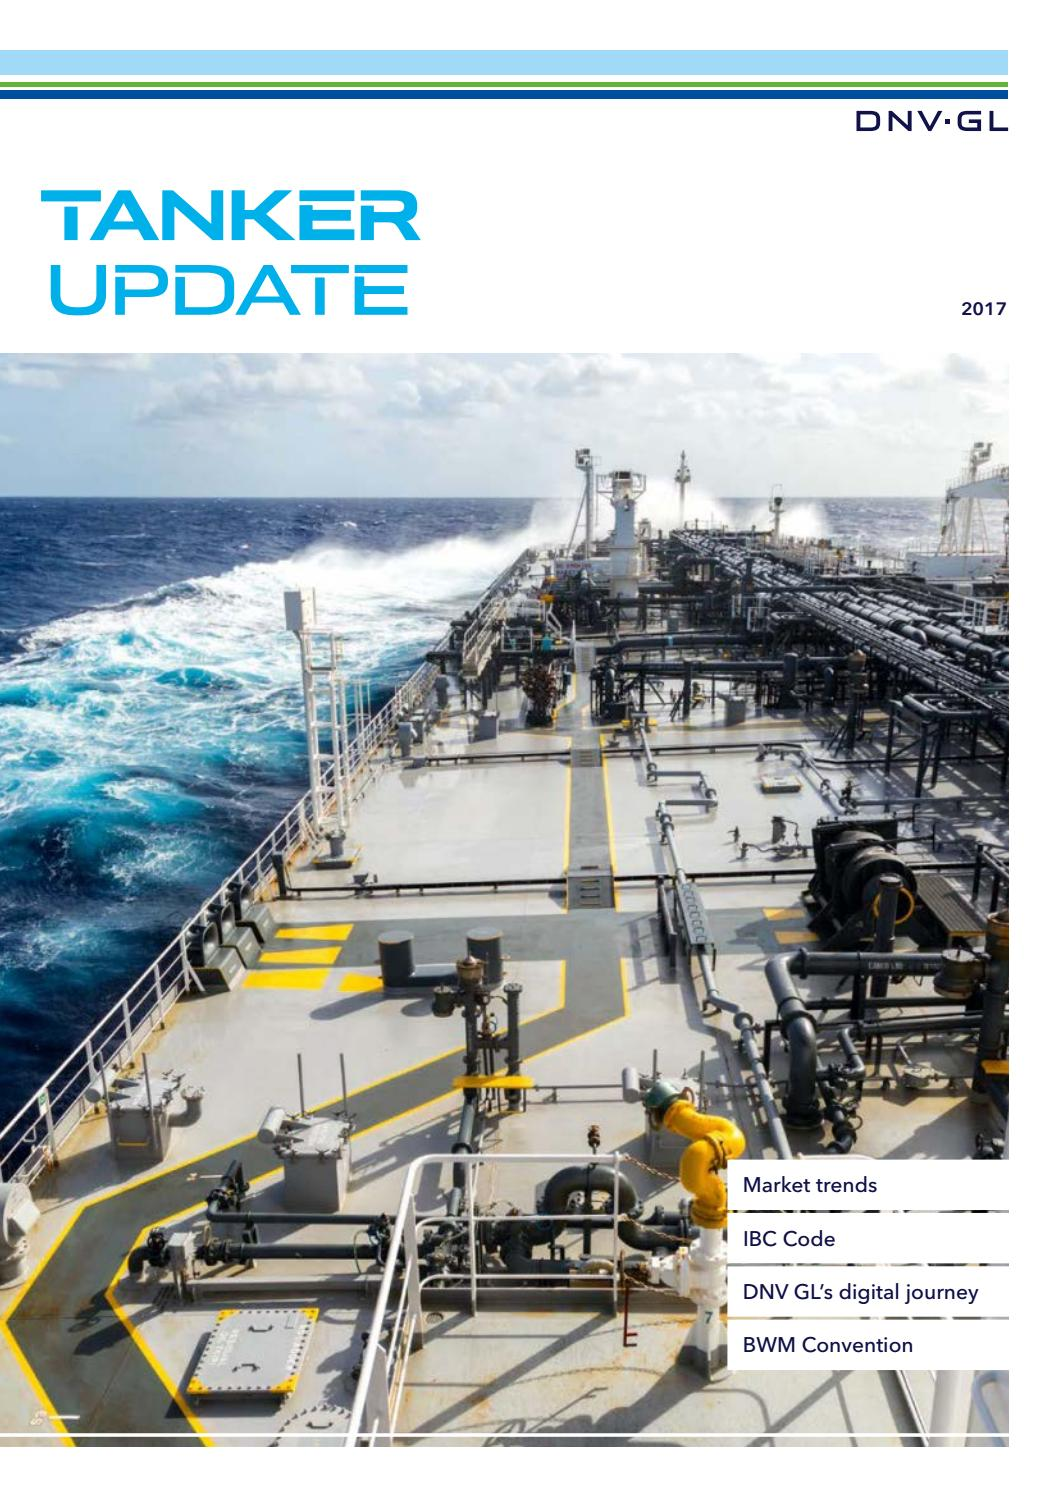 Tanker Update 2017 by DNV GL - issuu